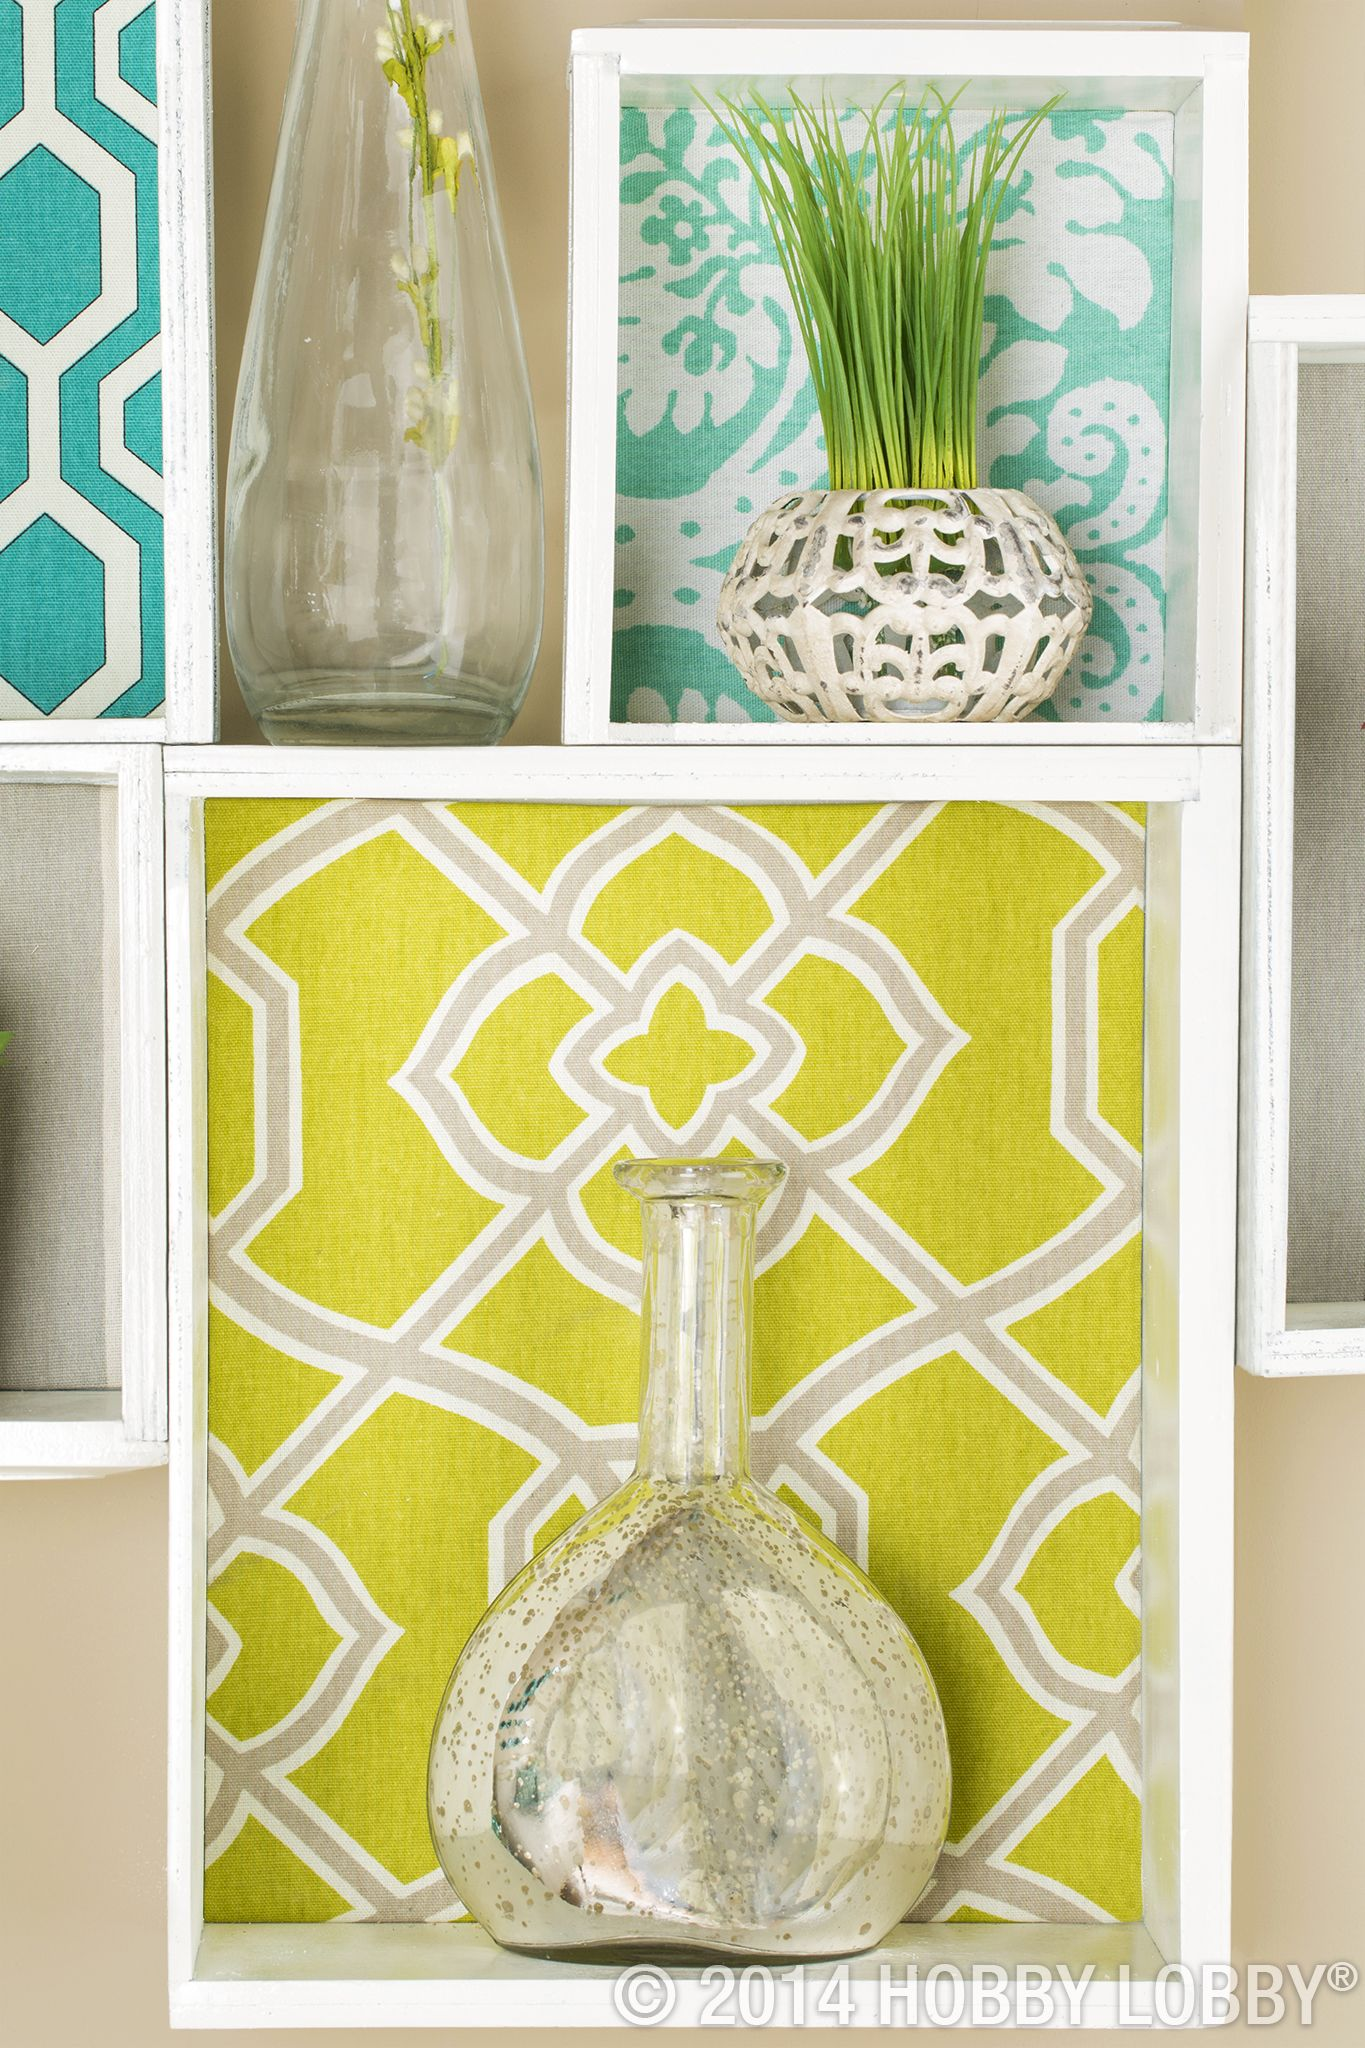 For fabric-friendly wall décor, line boxes with printed fabrics, and ...